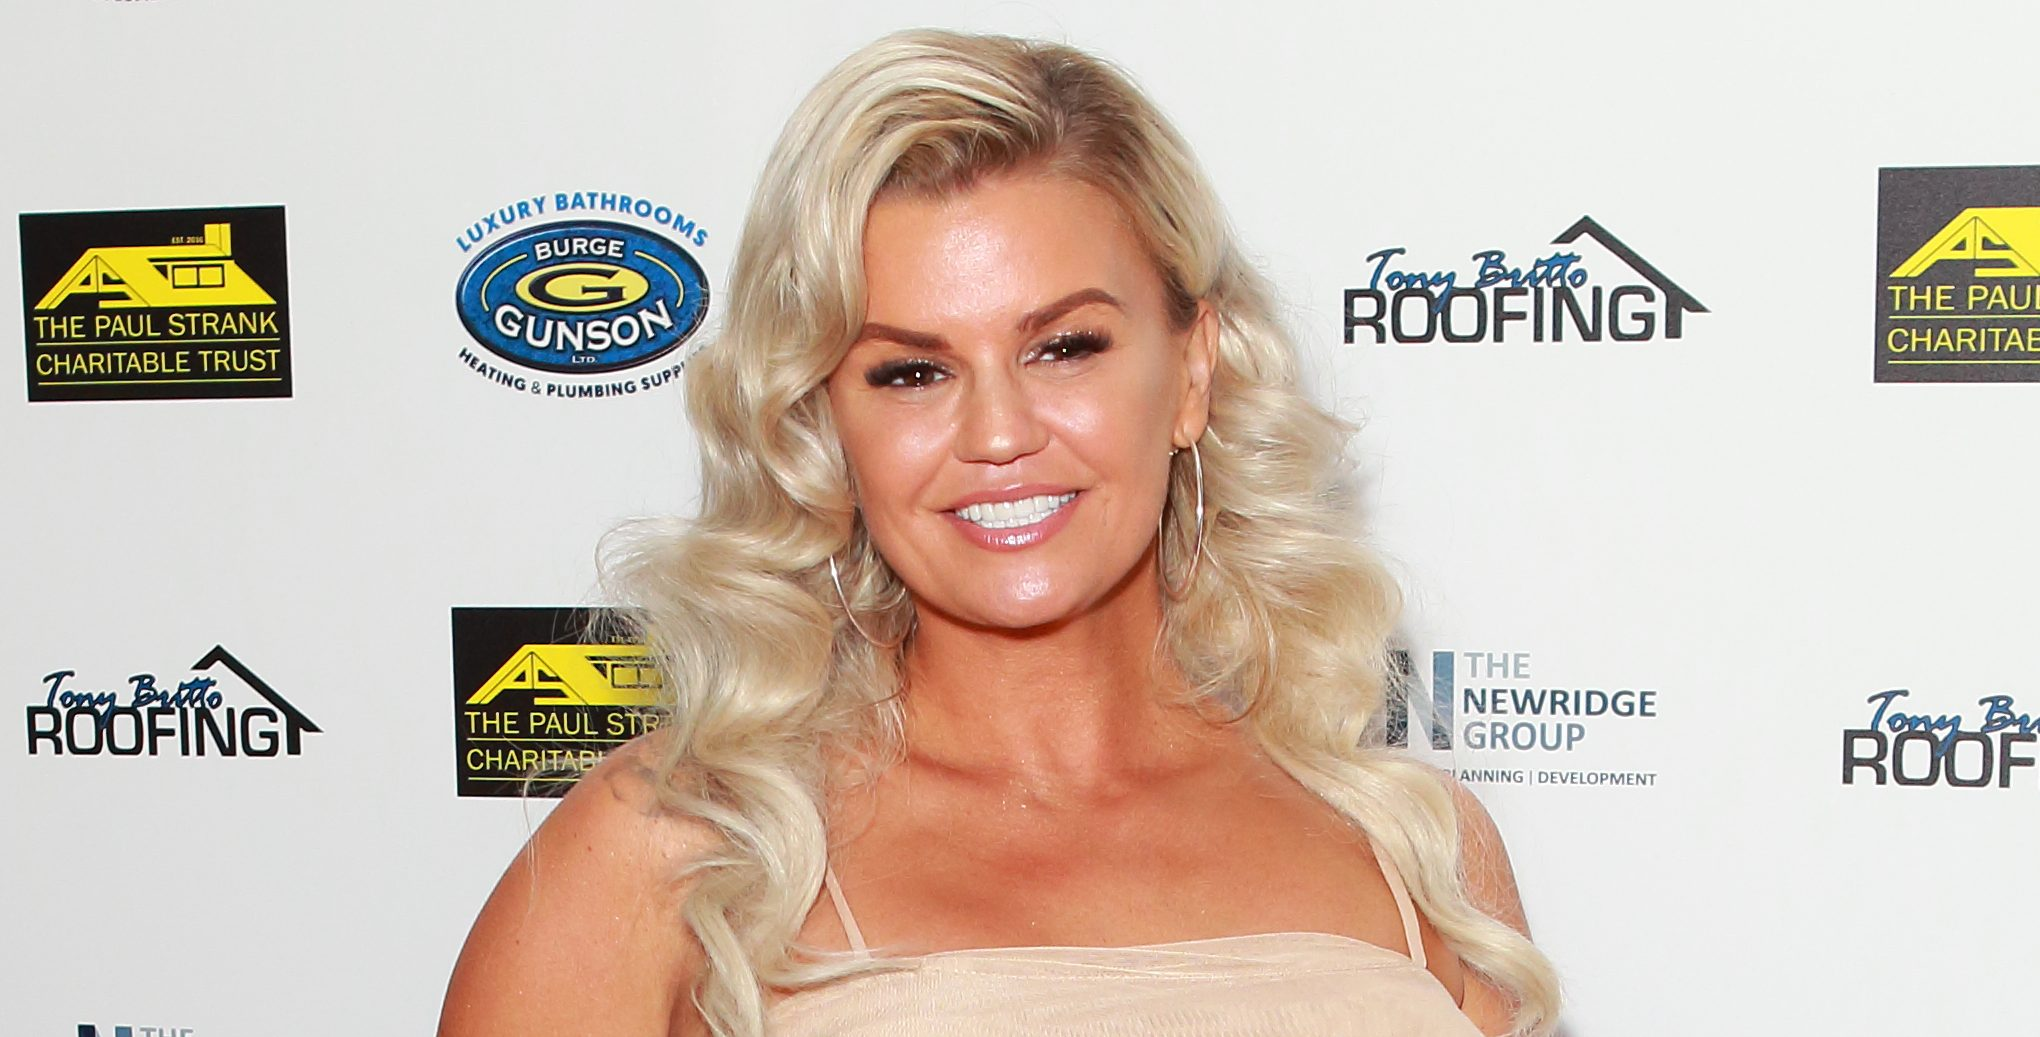 Truancy charges against Kerry Katona are dropped –the day she's set to appear in court